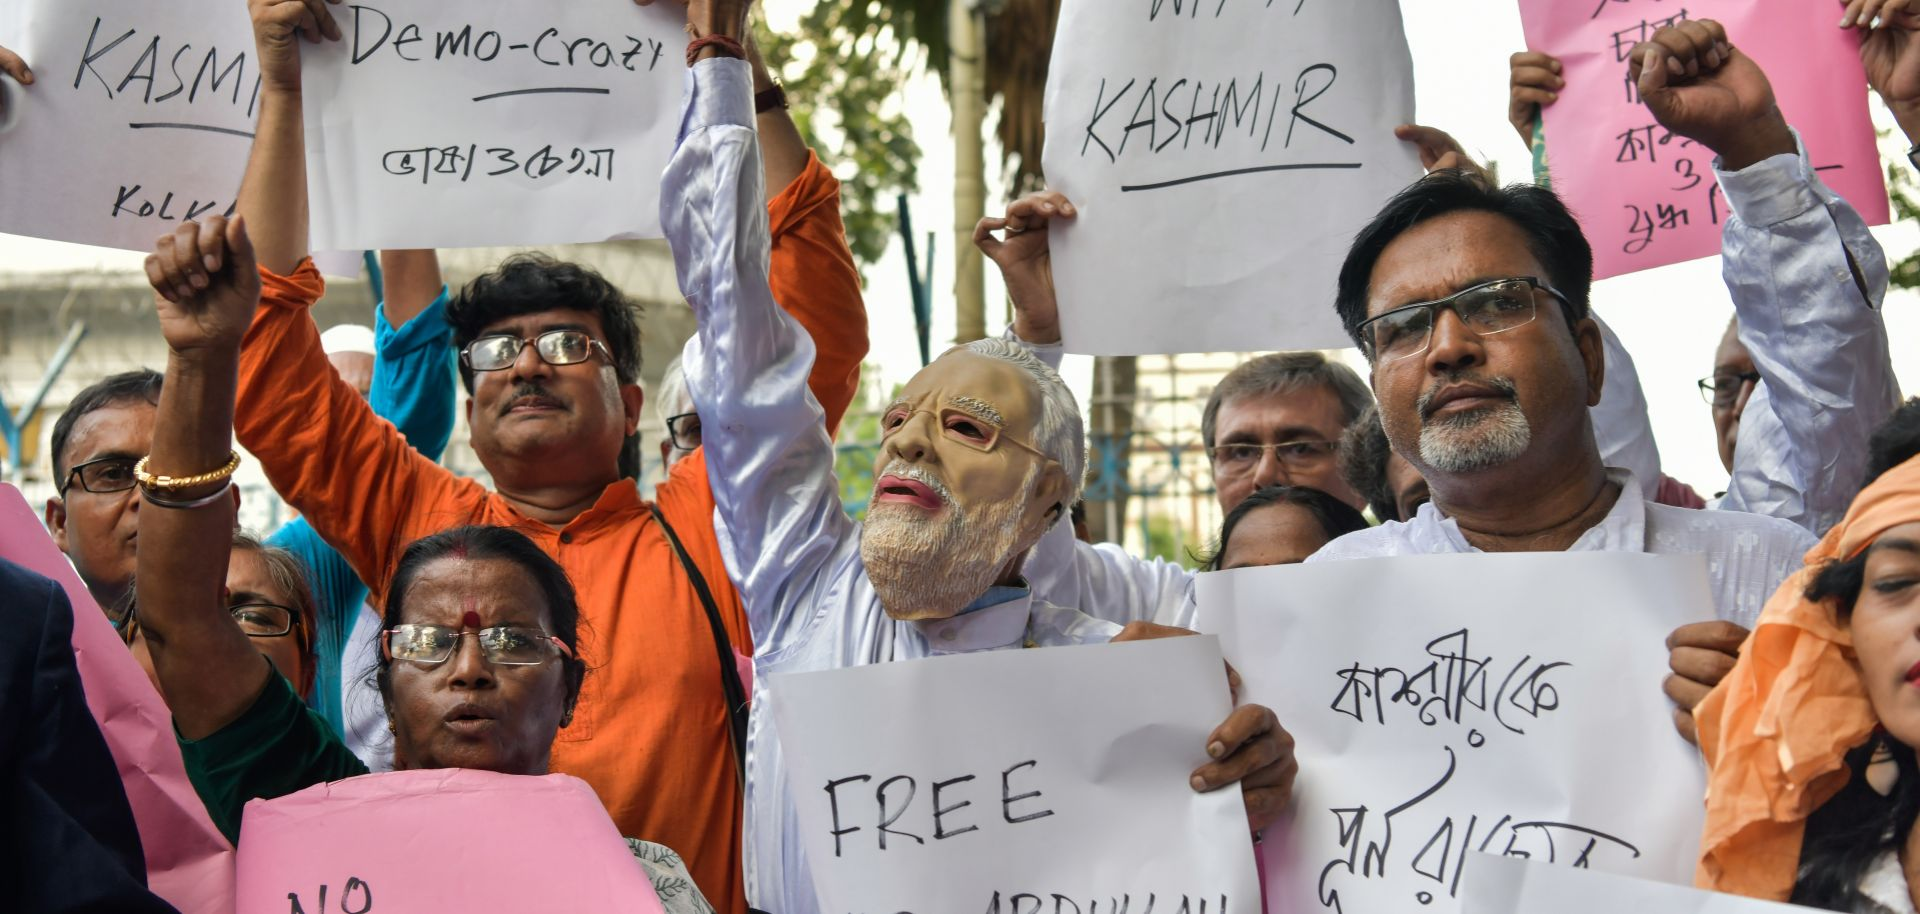 Demonstrators hold placards while shouting slogans during a protest in Kolkata on Aug. 5 at New Delhi's move to revoke Kashmir's autonomy for Jammu and Kashmir.